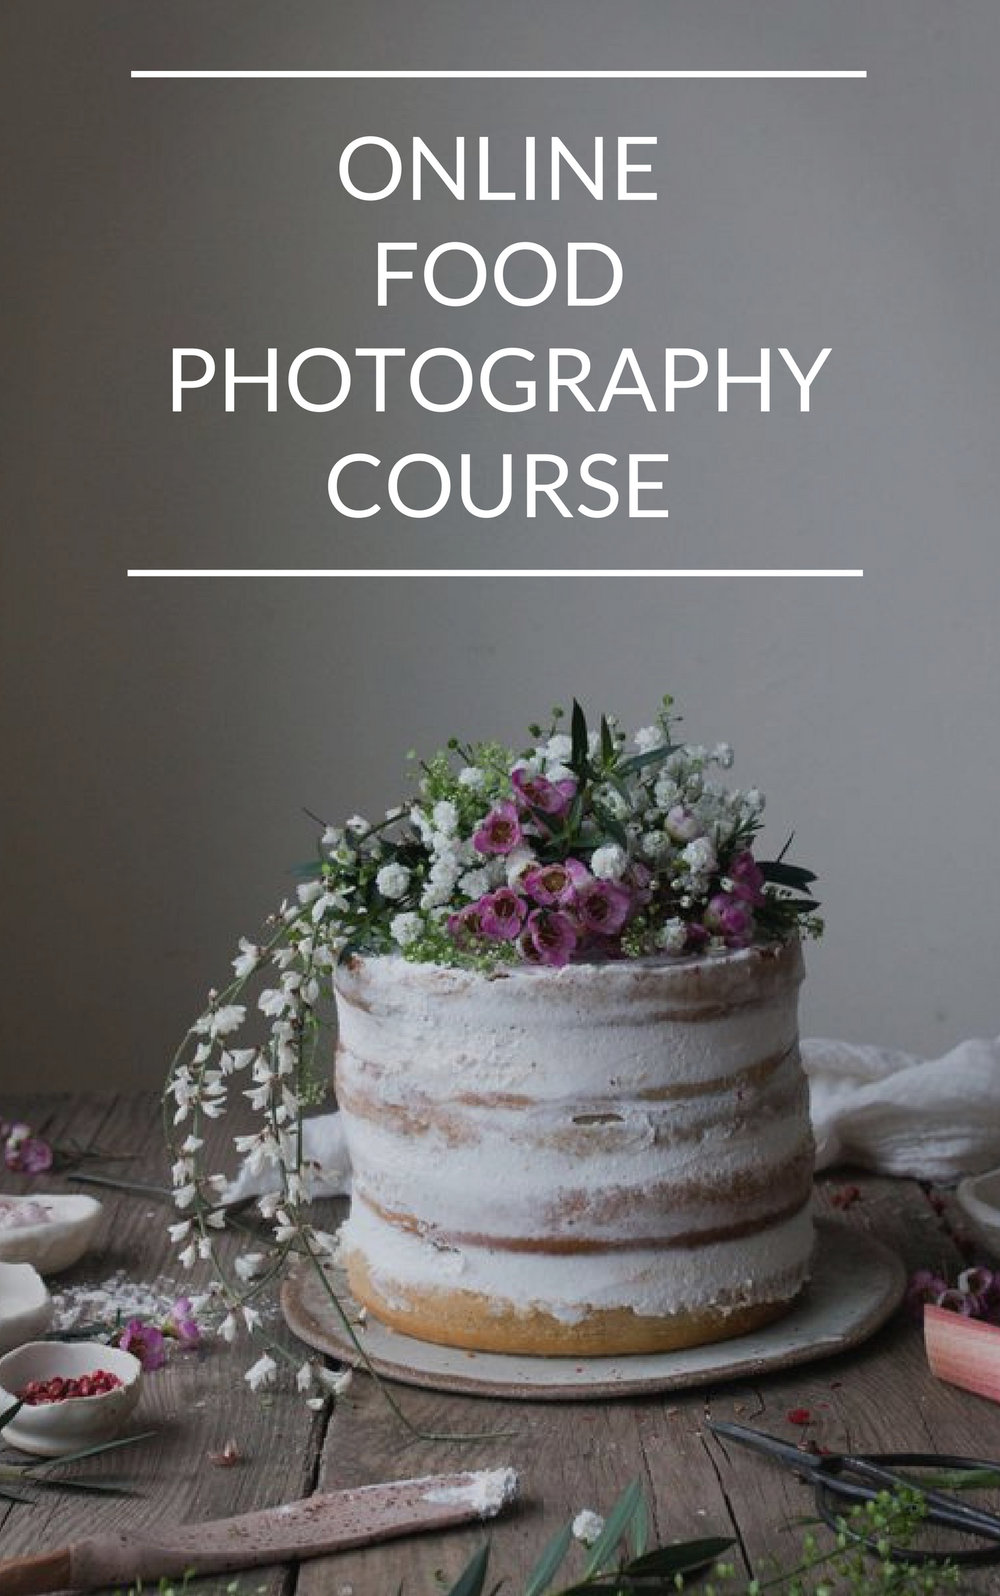 Online food photography classes for beginners